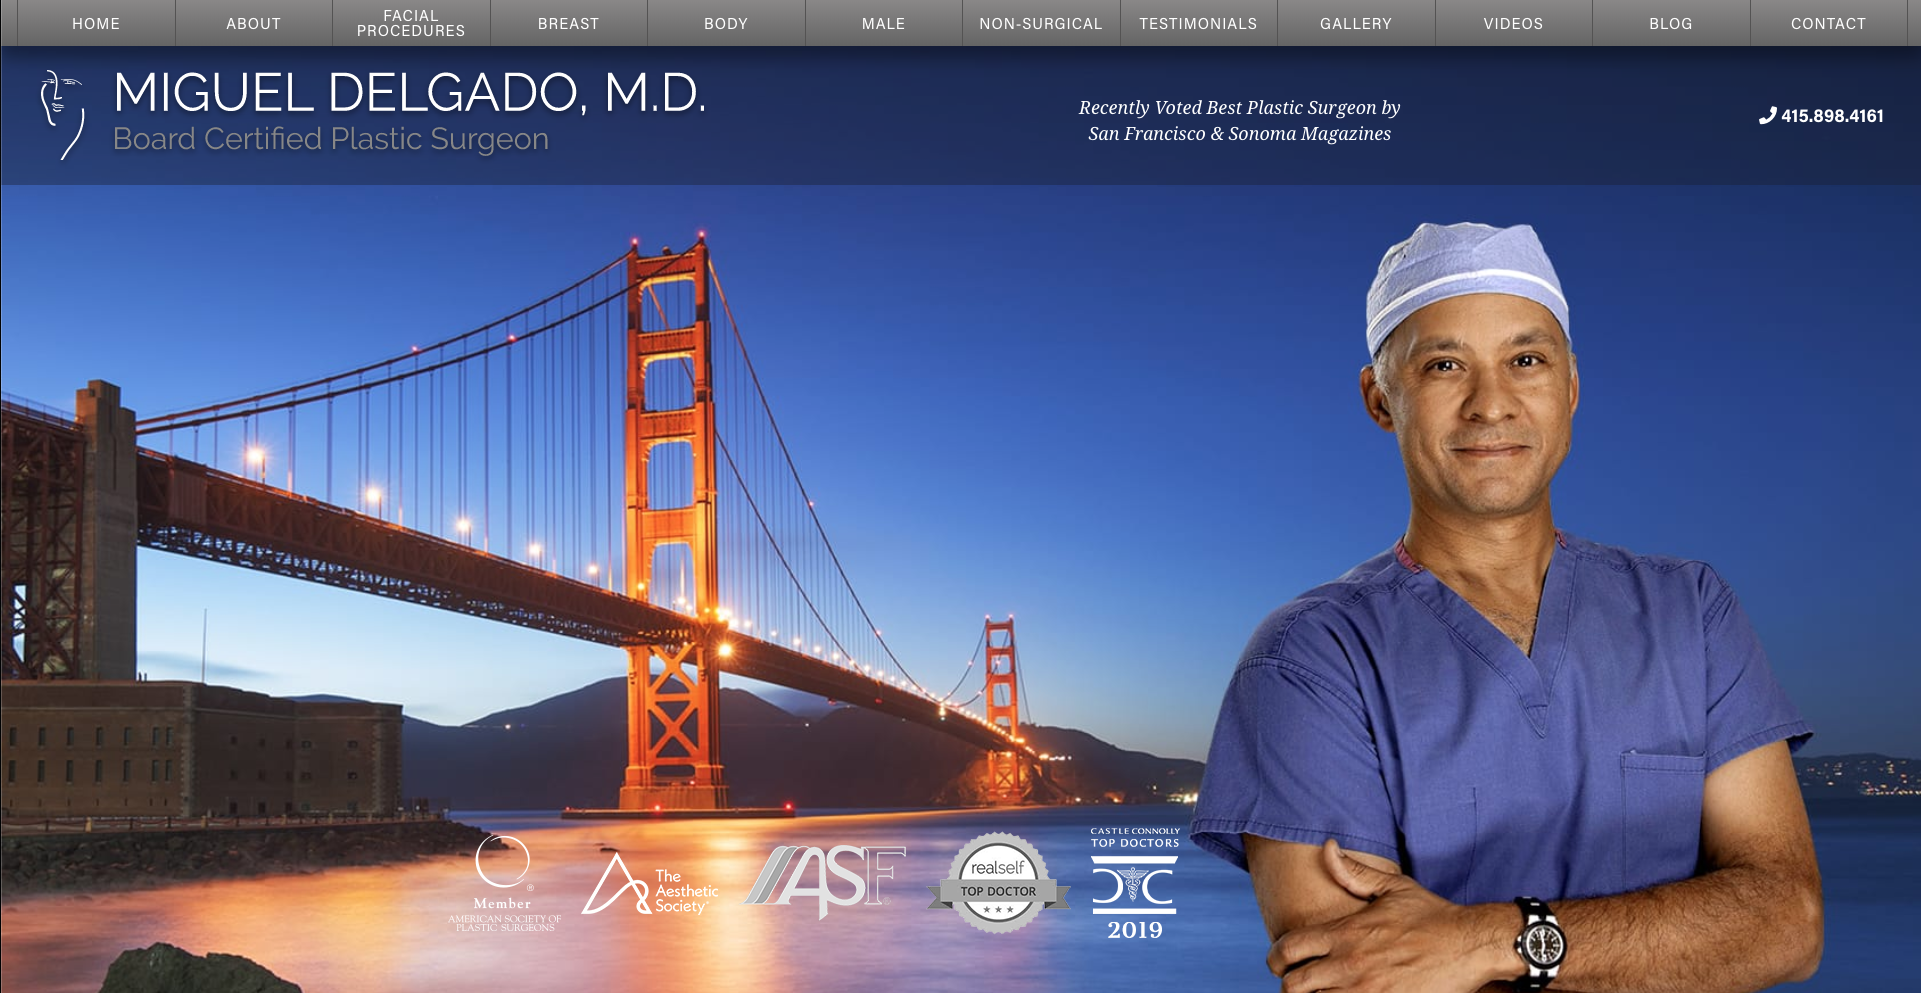 Dr. Miguel Delgado launches a new website for his plastic surgery practice with the help of Rosemont Media